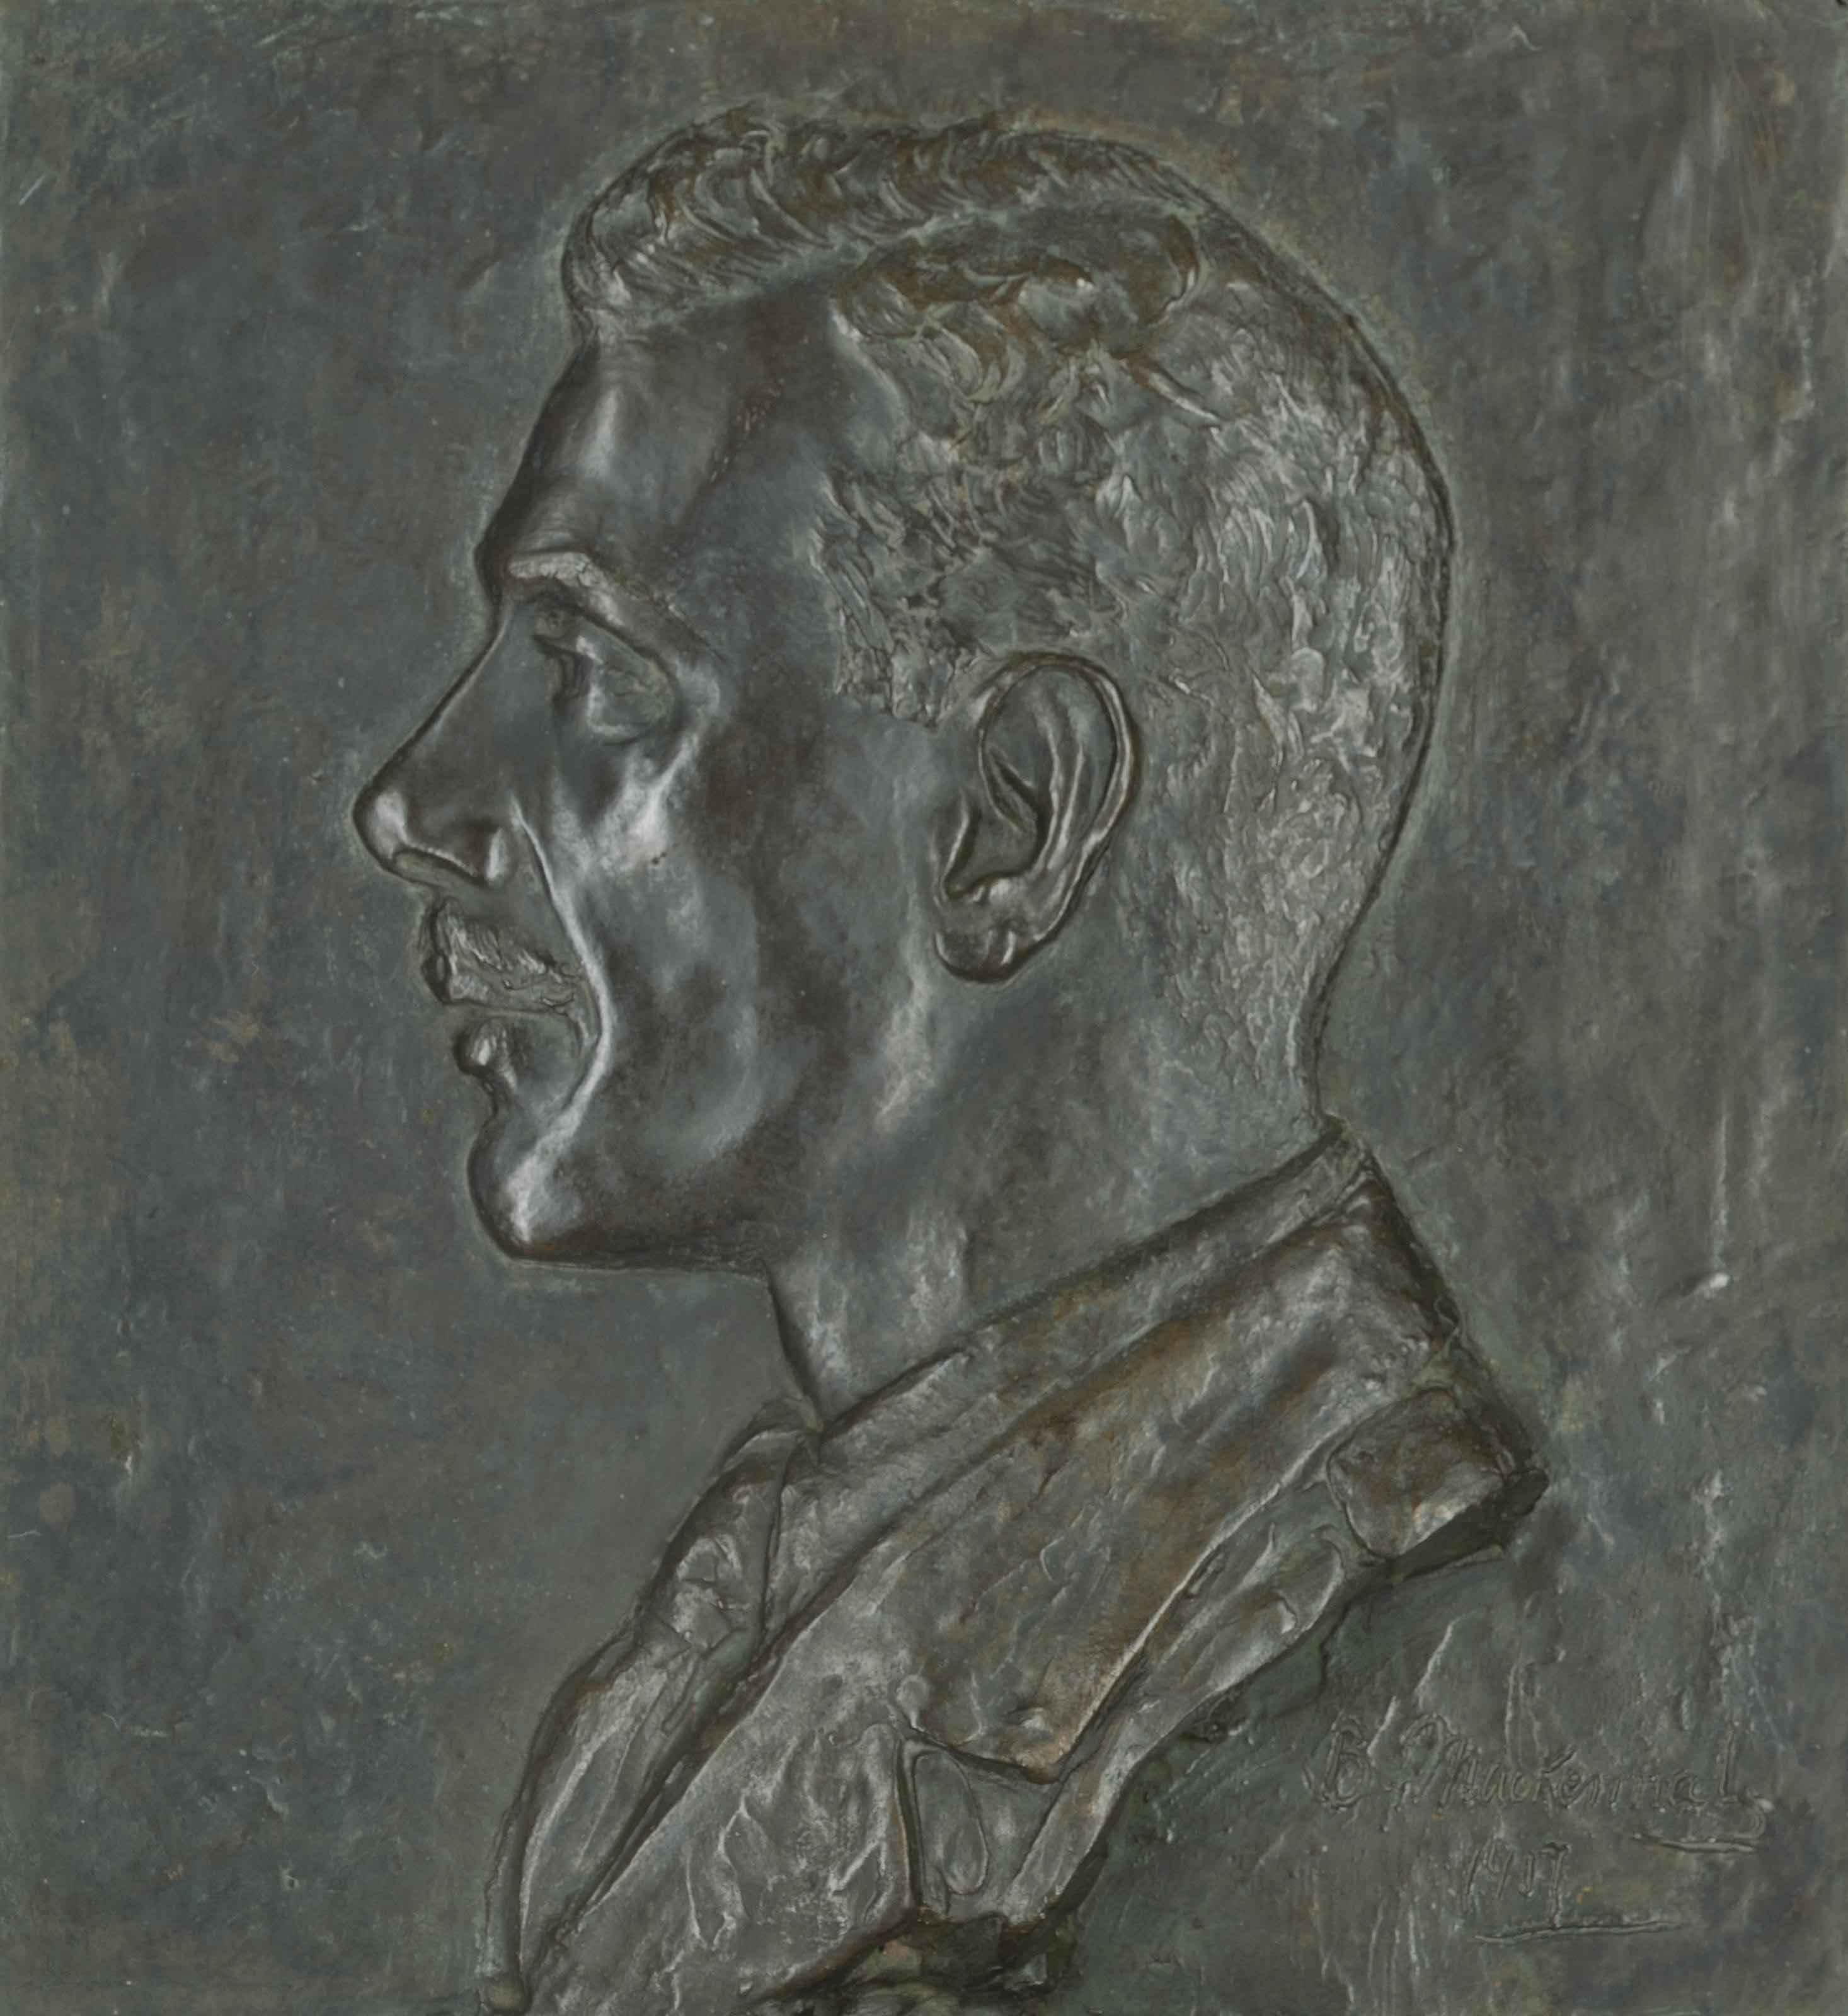 A relief portrait of an officer